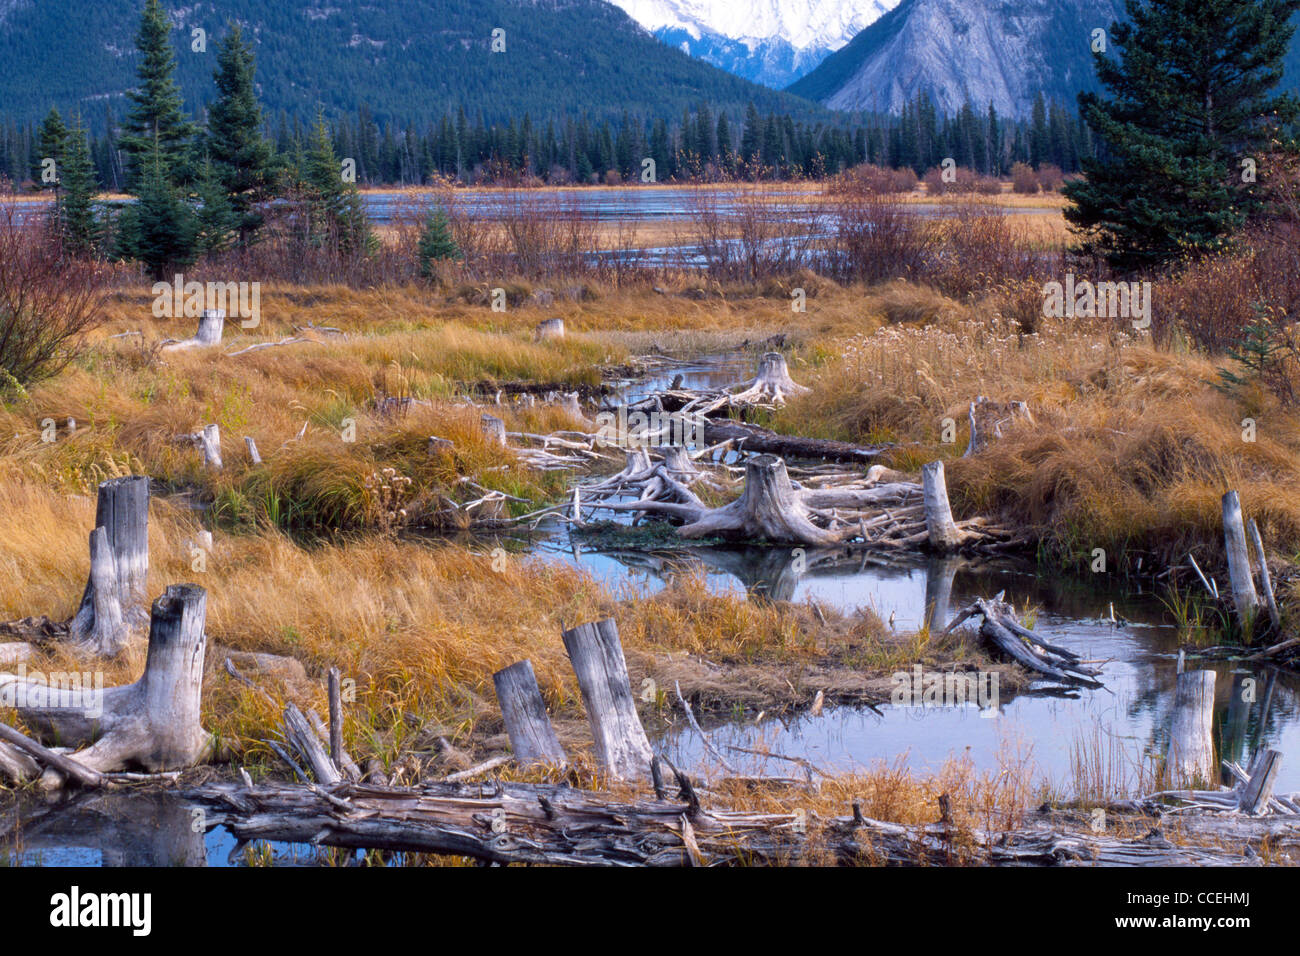 The wetlands of Vermilion Lakes are seen in the Bow River Valley in the Canadian Rockies at the foot of Mount Norquay Stock Photo